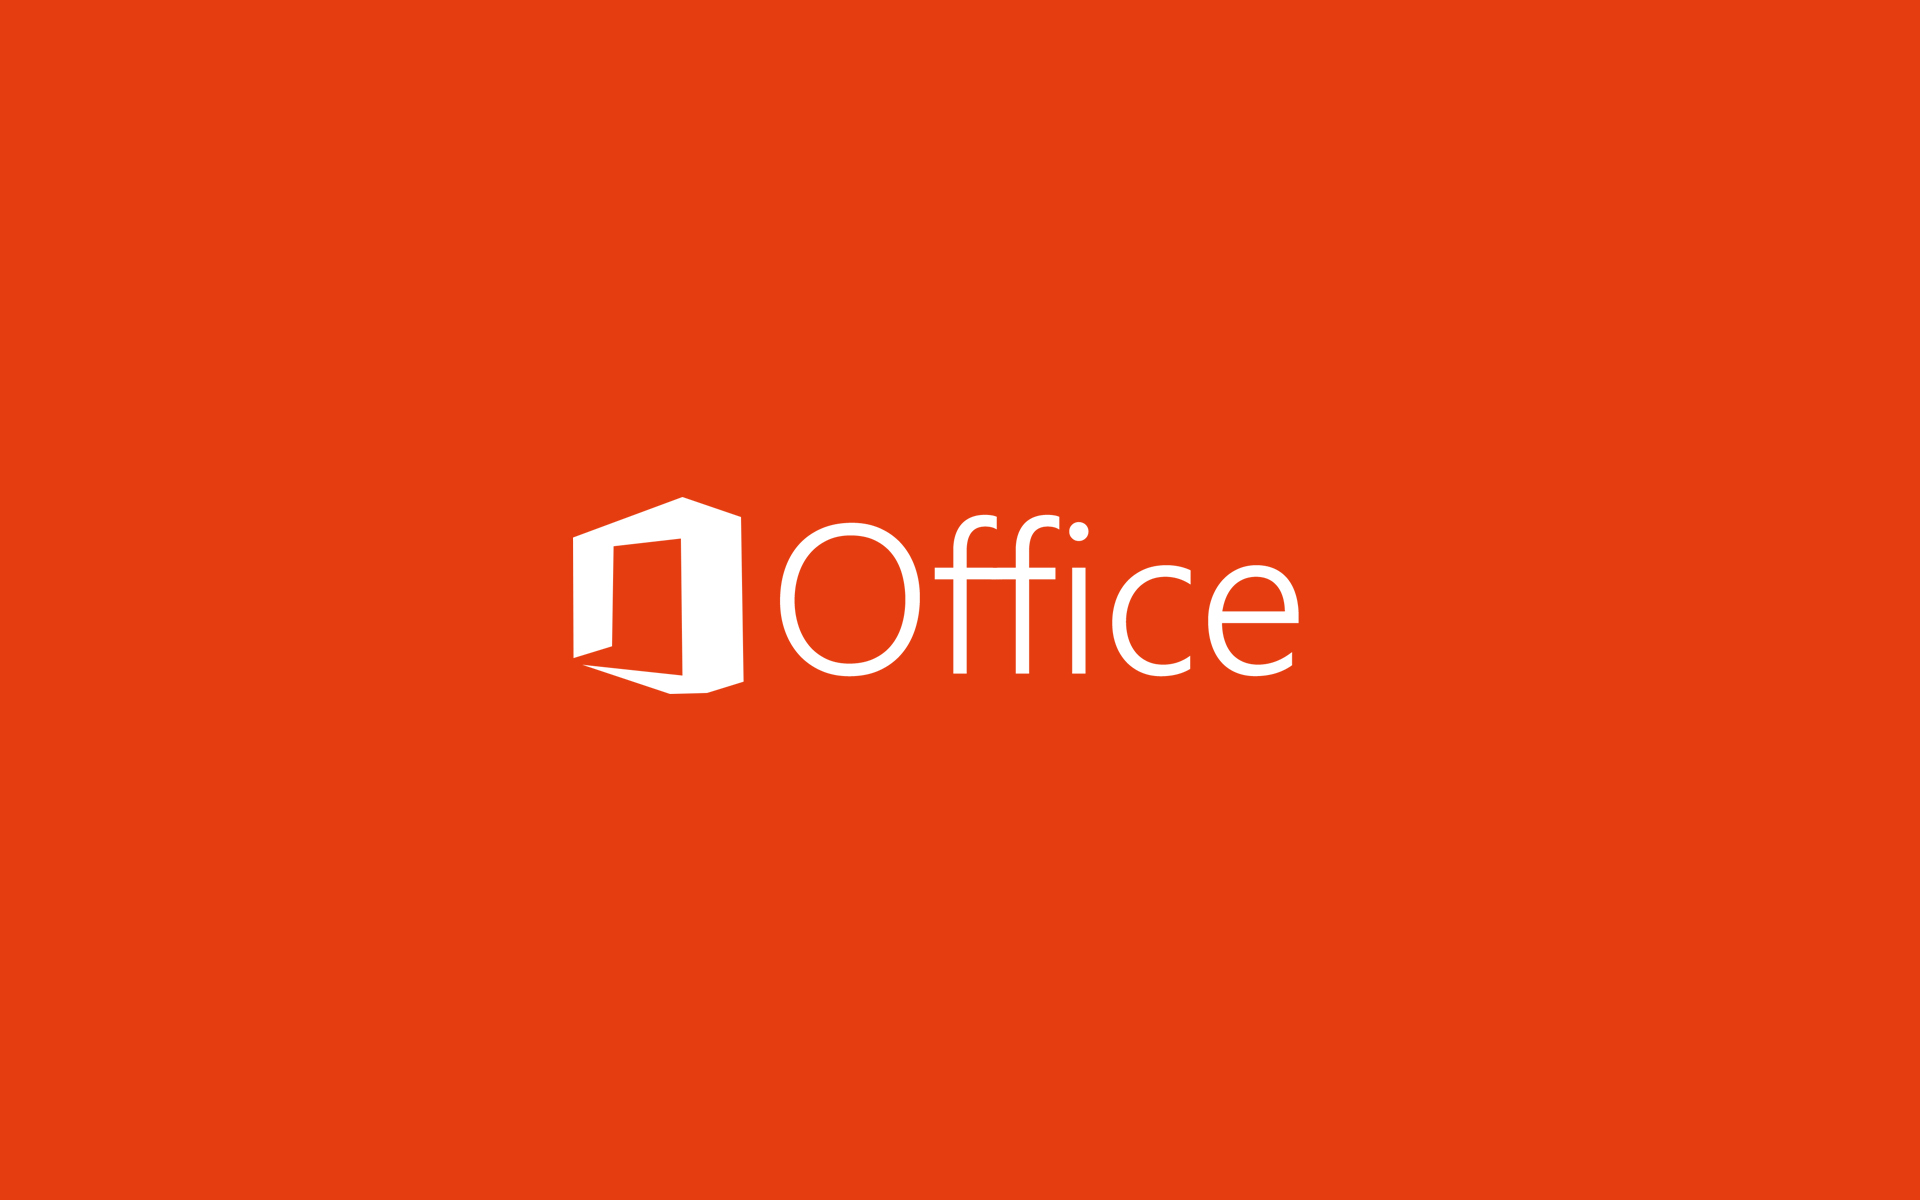 microsoft office 2013 wallpapers 1920x1200 228940